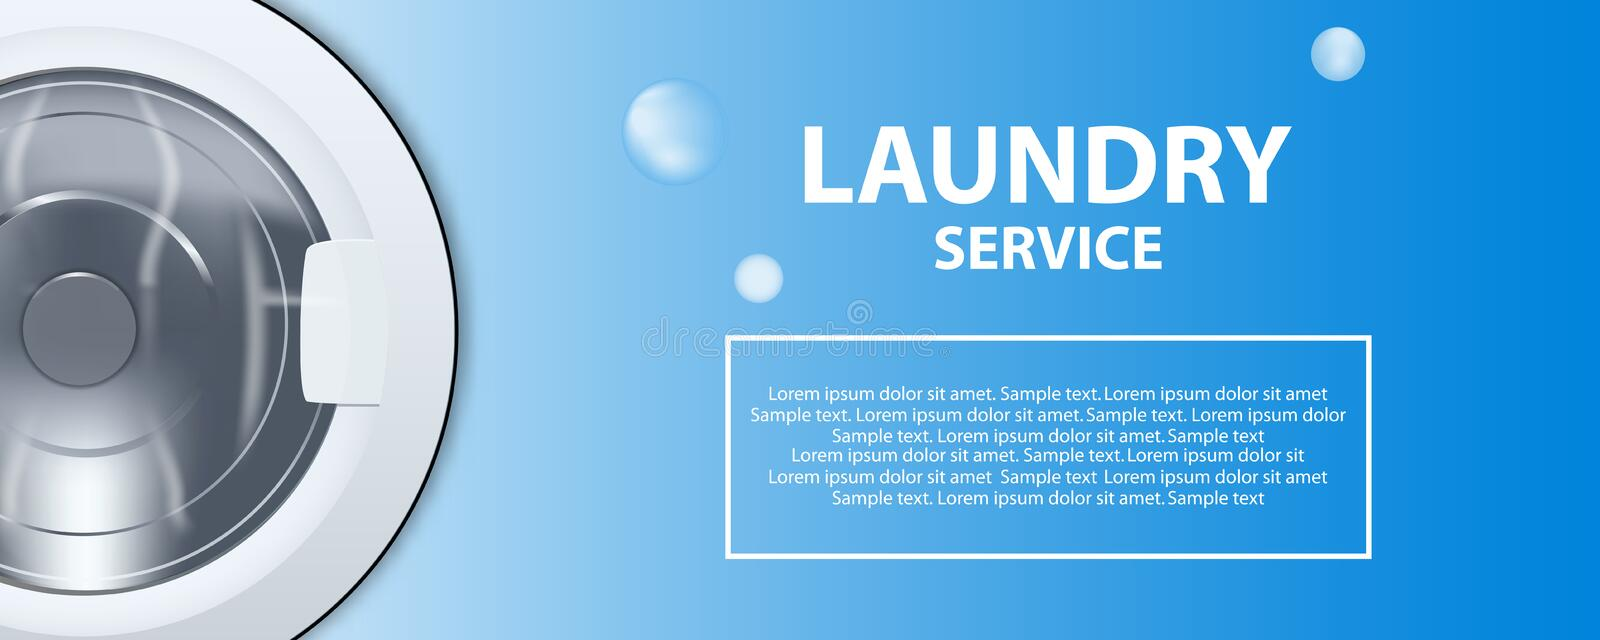 Laundry service banner or poster. Washing machine drum 3d realistic illustration. Front view, close-up, closed door royalty free illustration